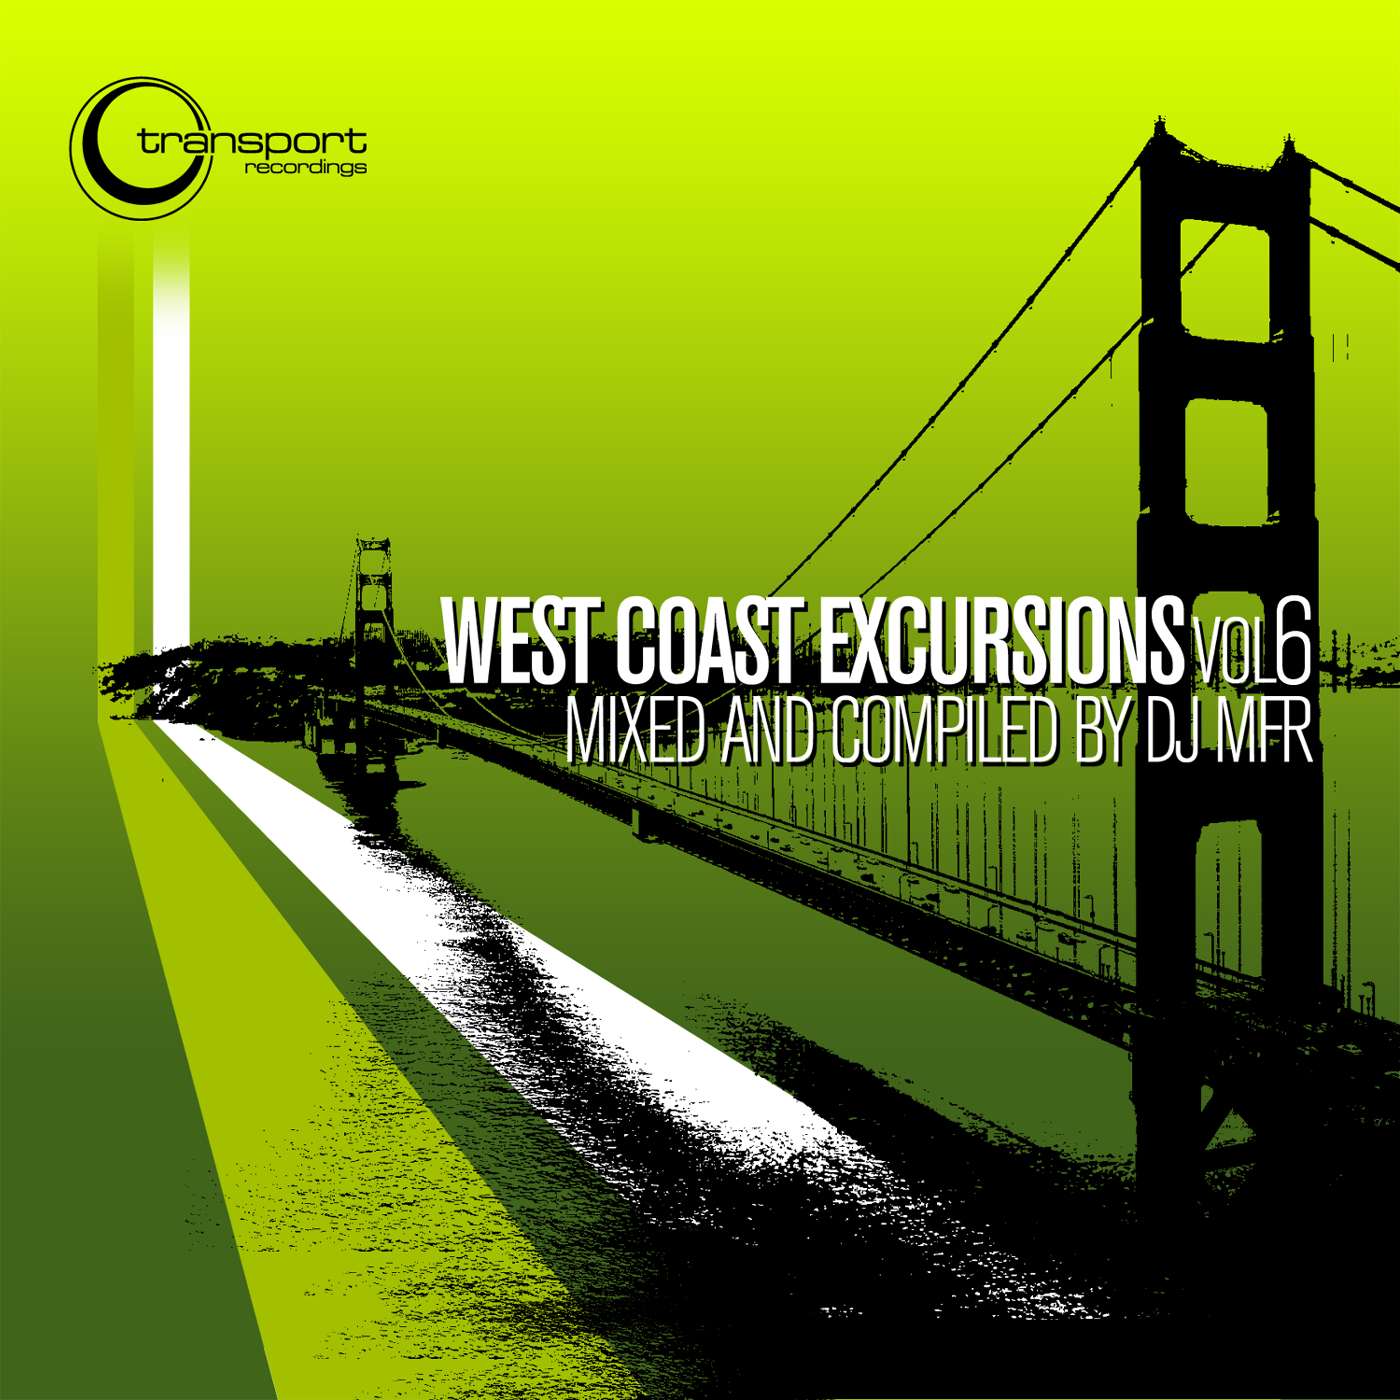 West Coast Excursion 6